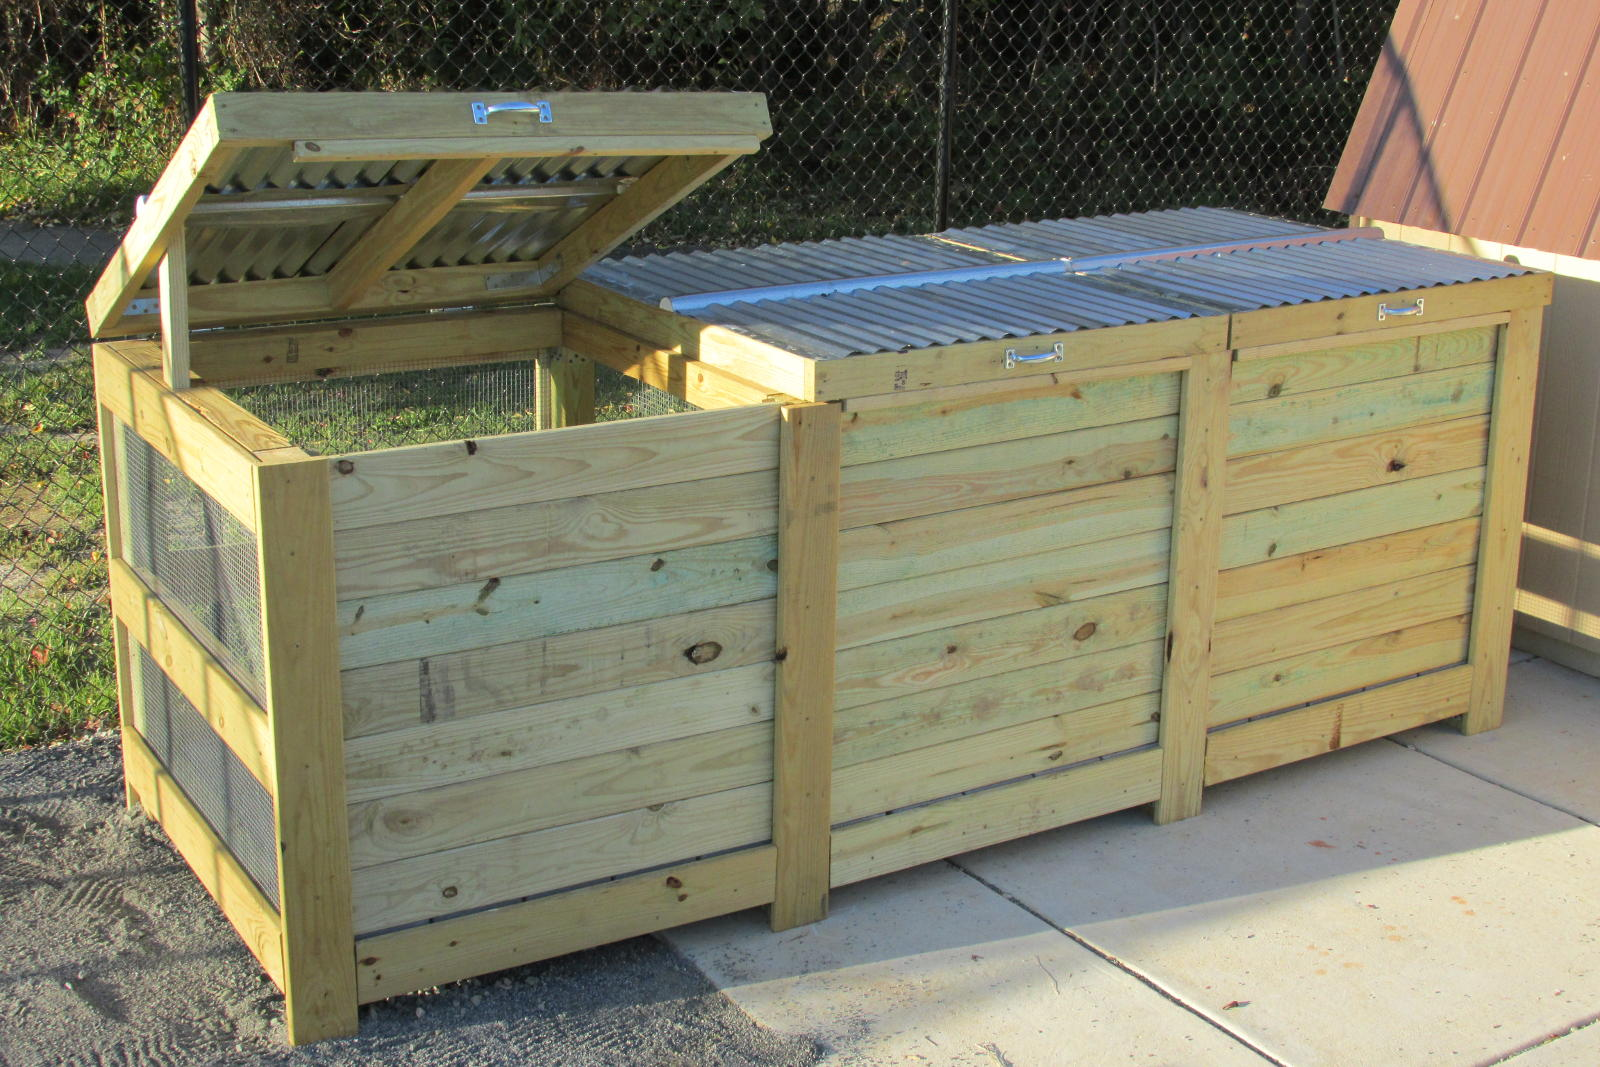 LoriBees Garden Rat Update and a Compost Bin Retrofit